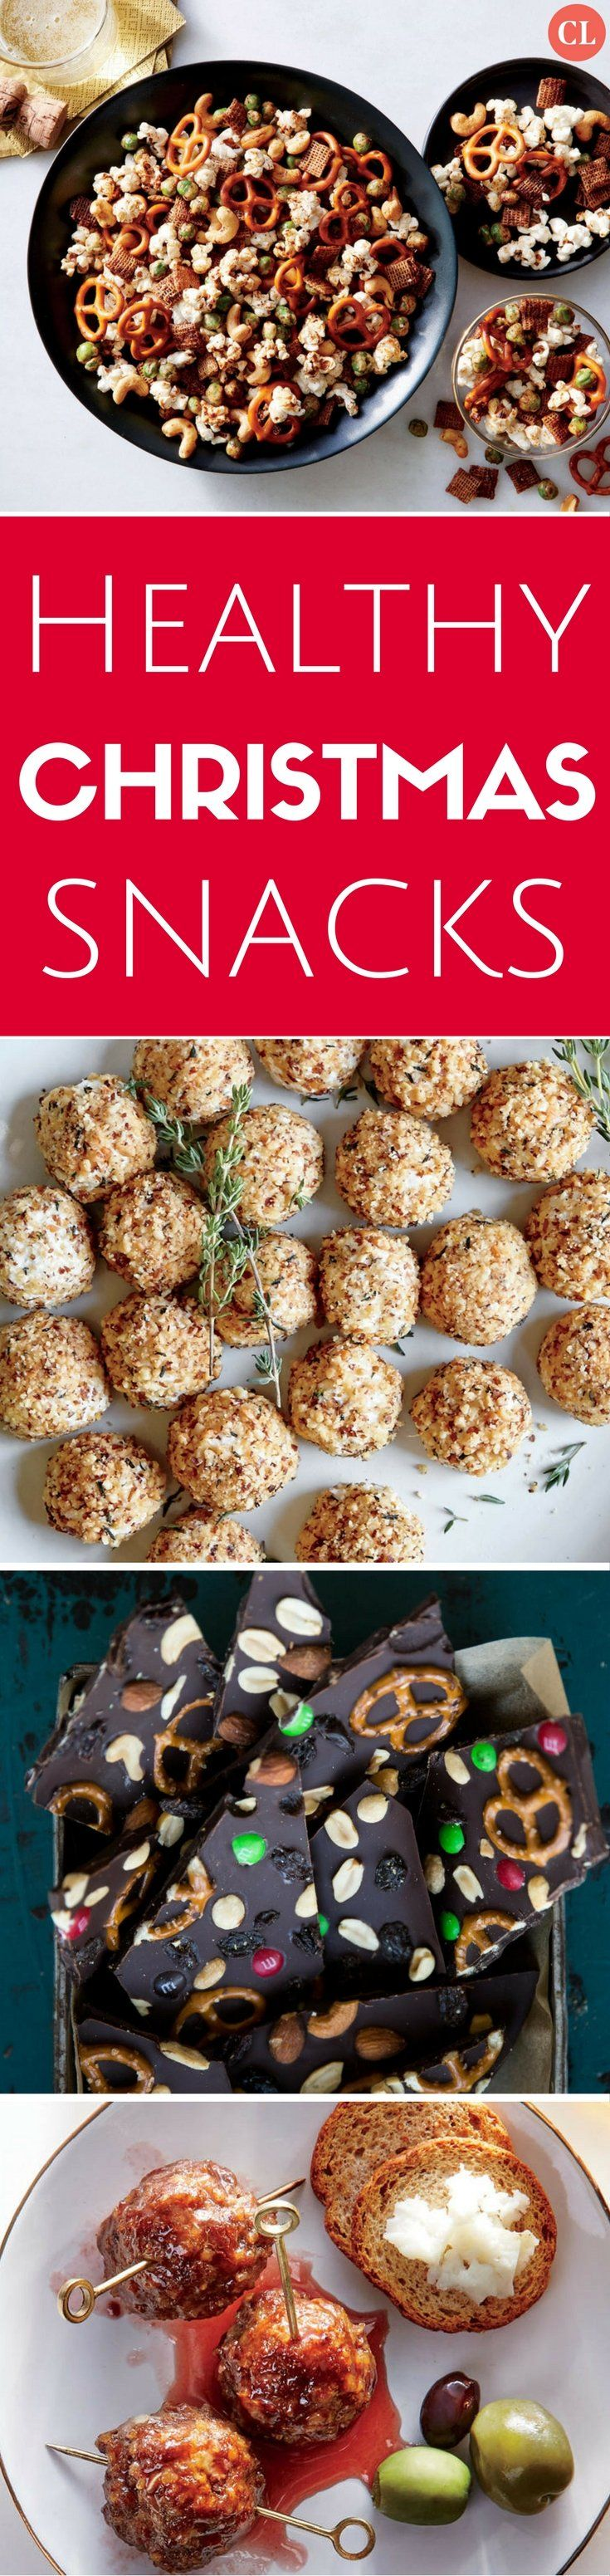 Healthy snacking during the holidays can be hard when endless appetizers and treats abound. Our healthy Christmas snacks can be enjoyed by the whole family between meals, before the holiday feast, or late at night. We celebrate the season with pomegranate seeds, squash varieties, spiced & roasted nuts, and cheesy bites.   Cooking Light